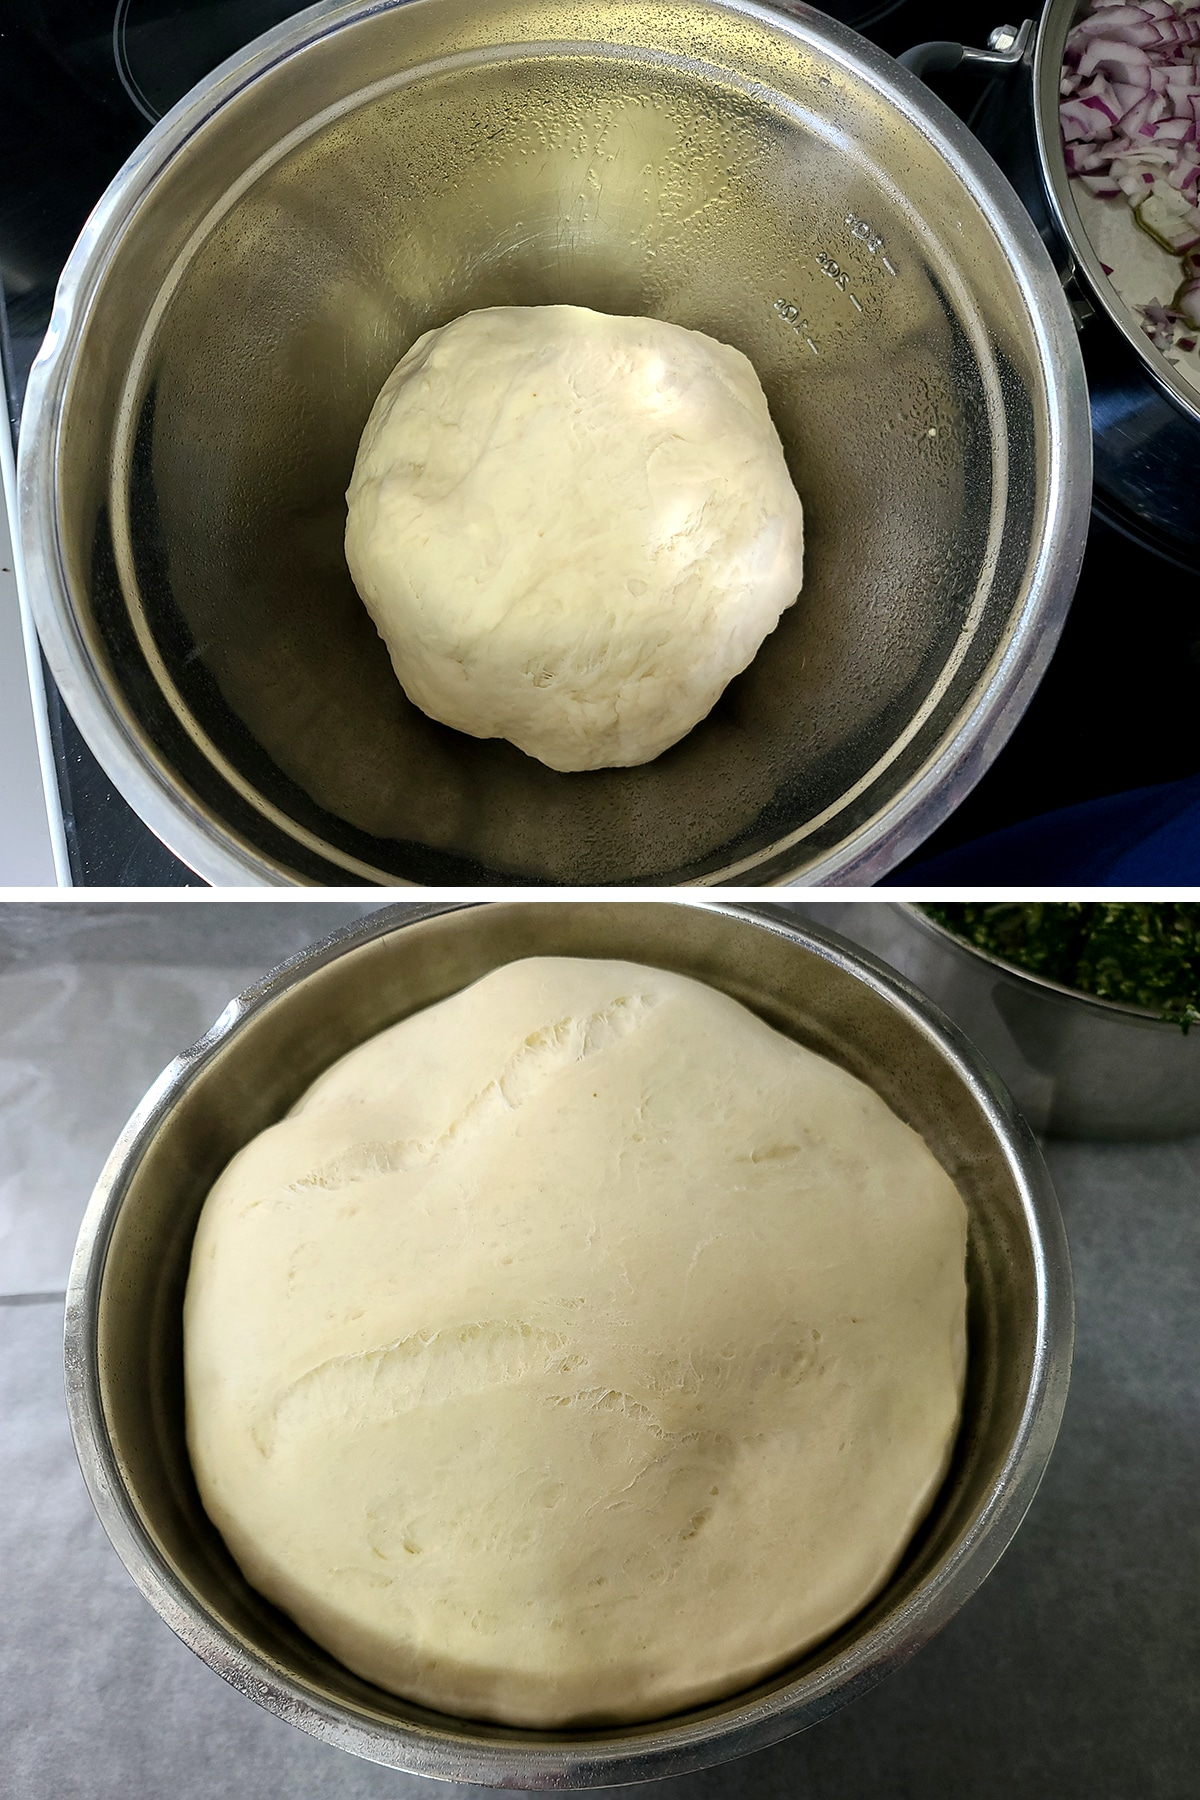 A two part compilation image showing a dough ball in a metal bowl, and that same dough ball after rising - it almost fills the bowl.